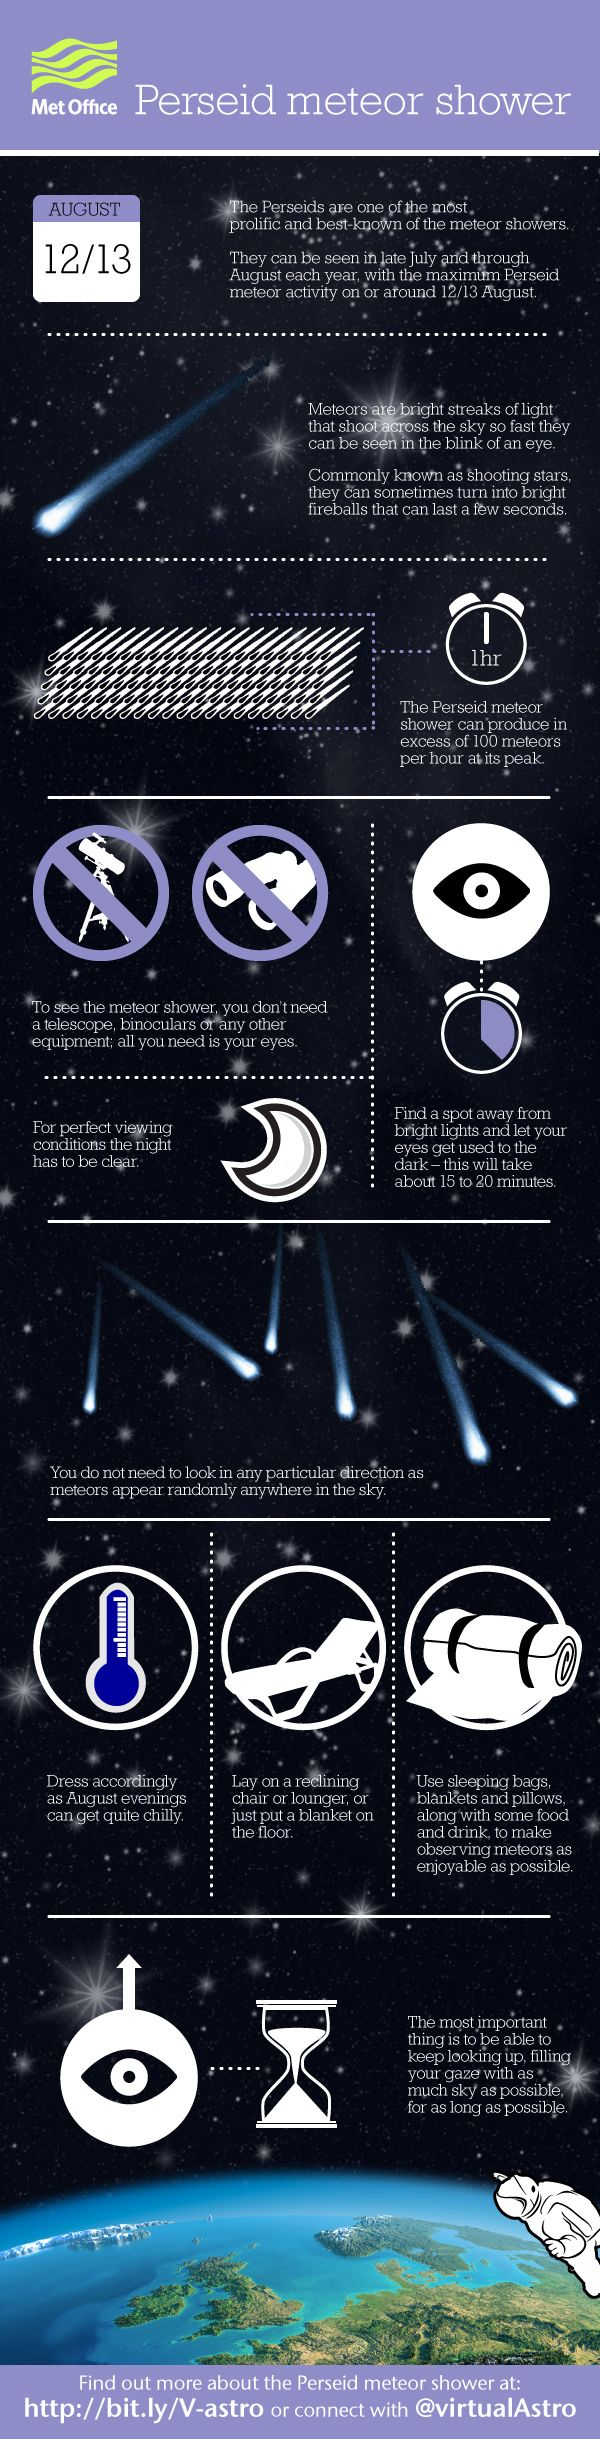 Perseid meteor shower - Meteors are bright streaks of light that shoot across the sky so fast they can be seen in the blink of an eye. Commonly known as shooting stars, they ... Check more at http://carpfishinglakes.com/perseid-meteor-shower/